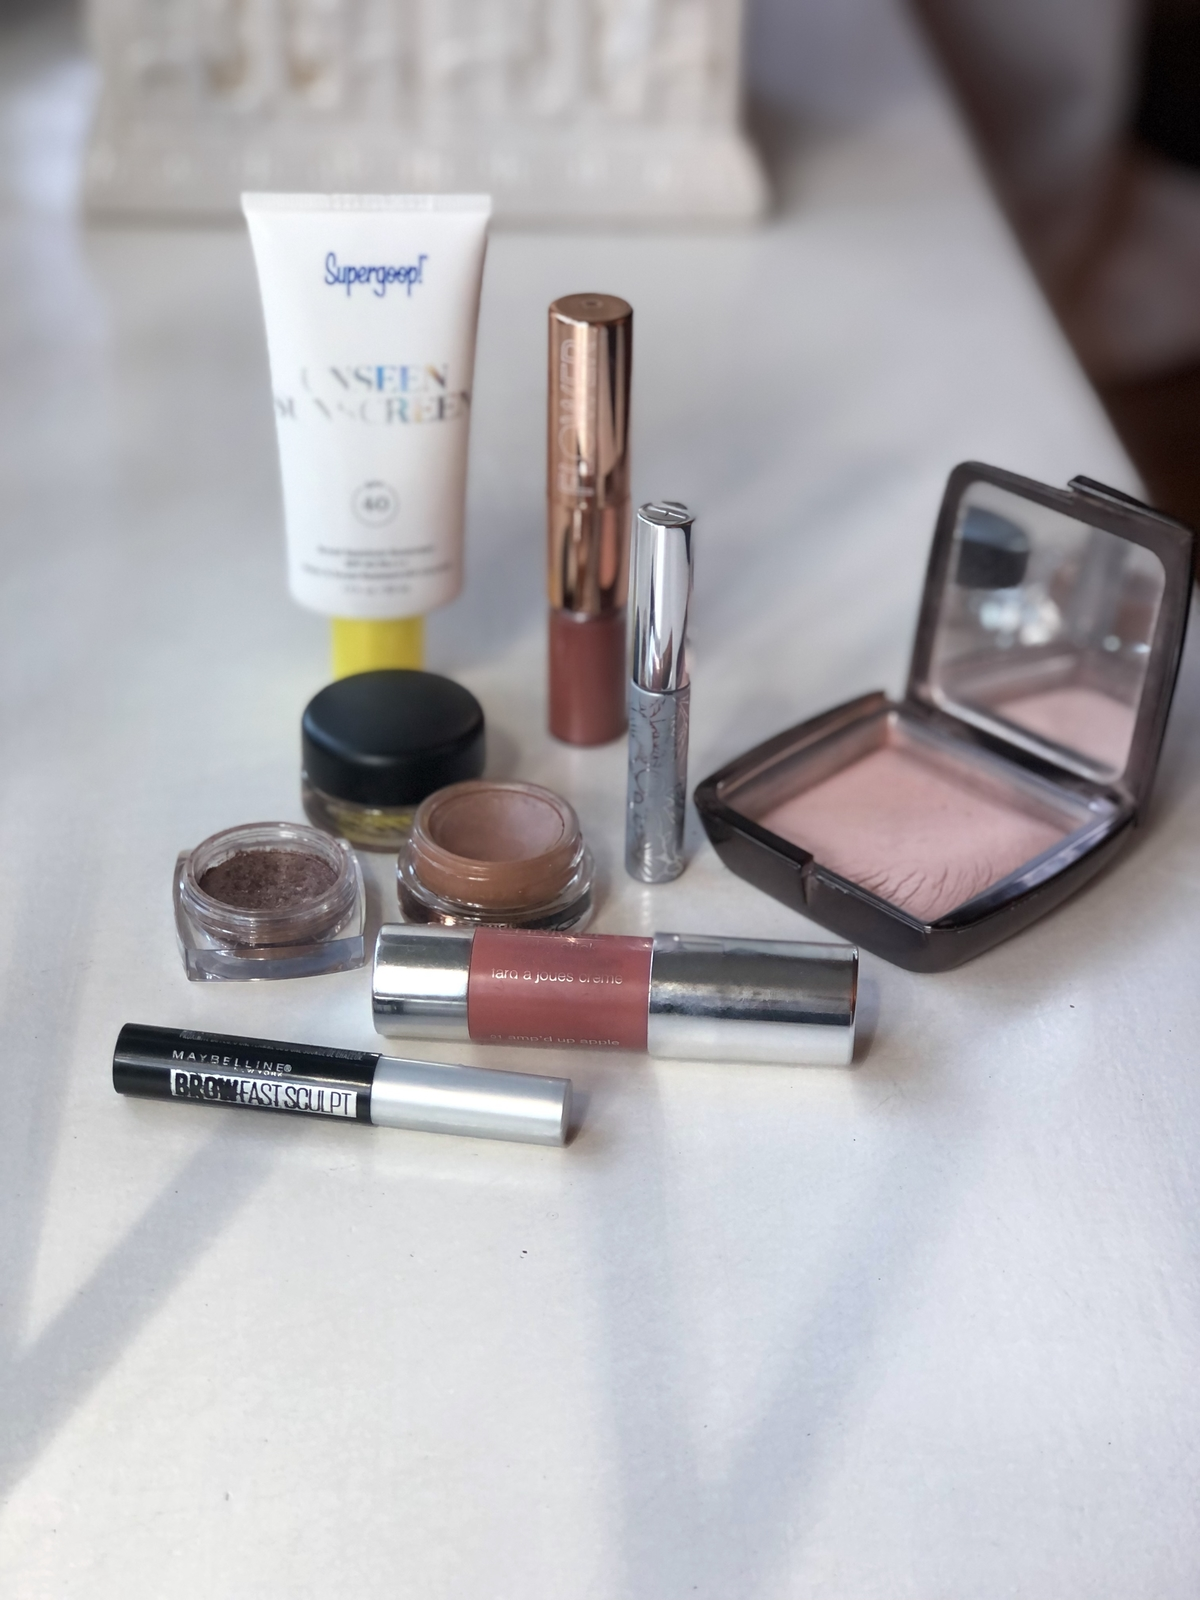 Some of my favorite products from my collection, including brow gel, blush, eyeshadow, primer, SPF, powder, mascara & lipstick